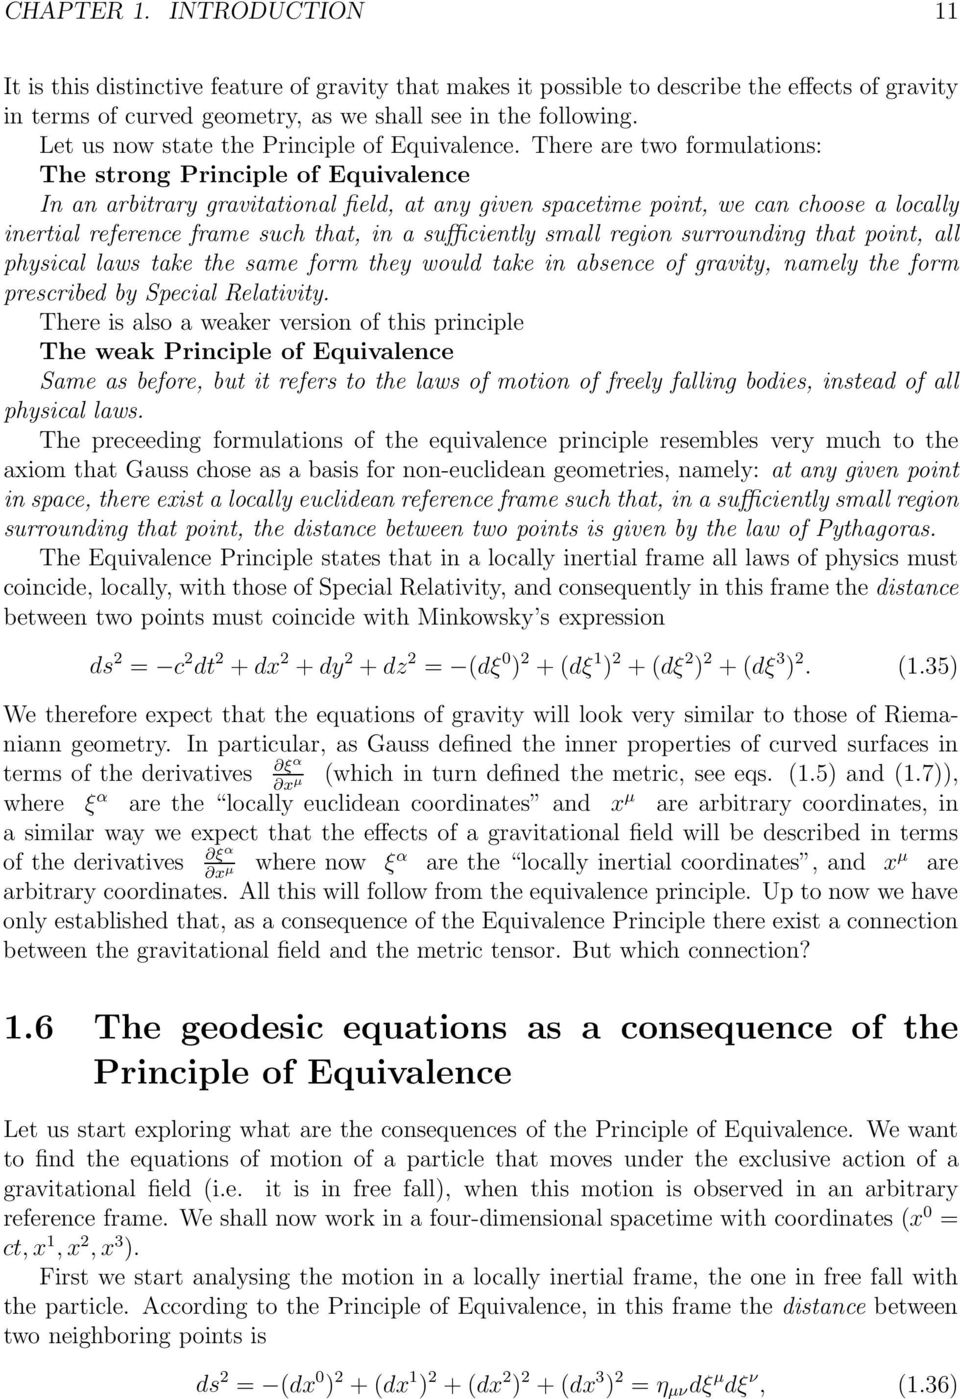 There are two formulations: The strong Principle of Equivalence In an arbitrary gravitational field, at any given spacetime point, we can choose a locally inertial reference frame such that, in a